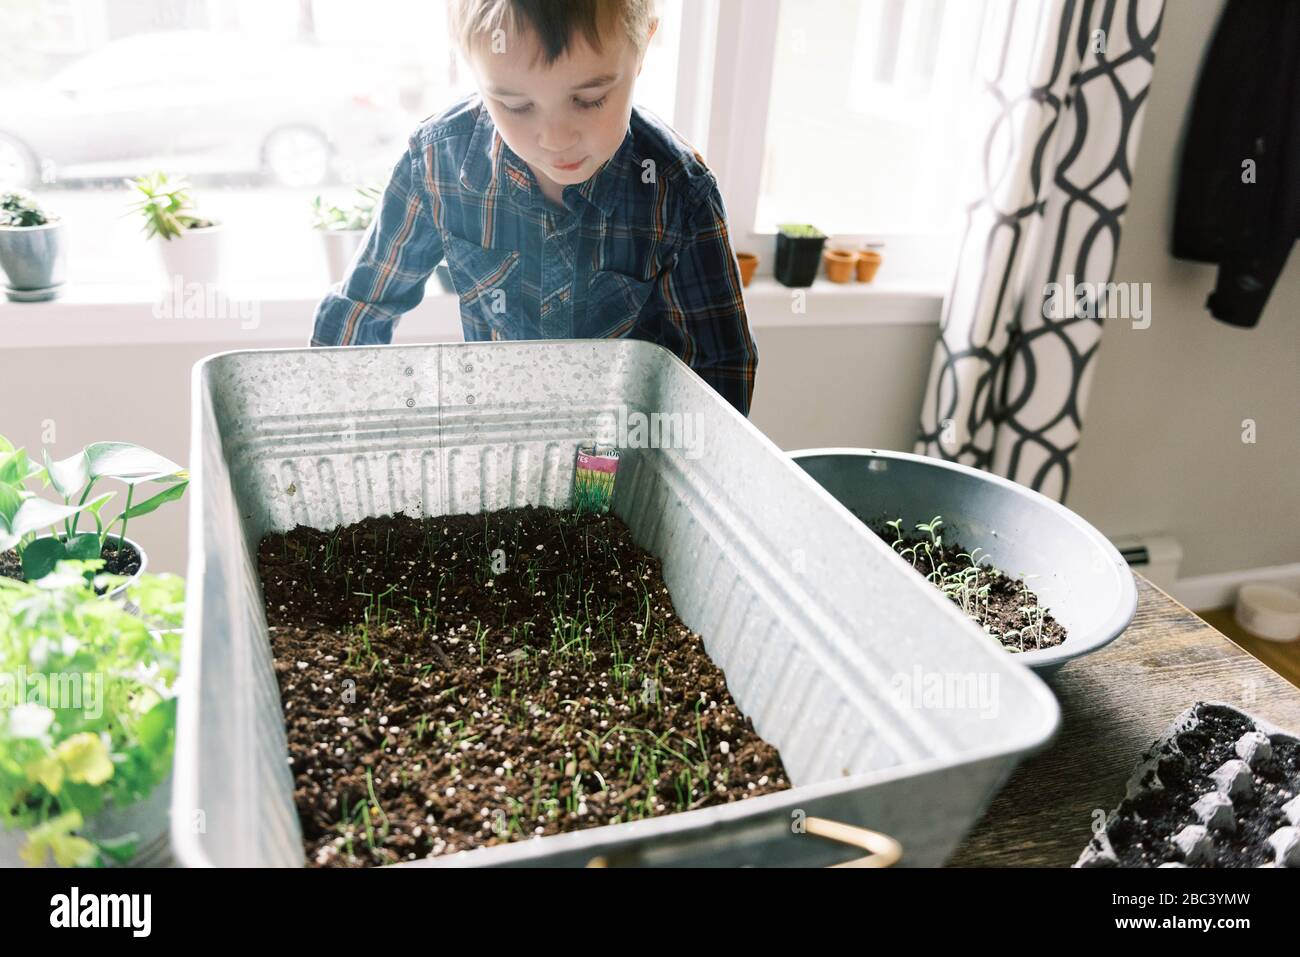 Little boy growing chives for the season. Stock Photo